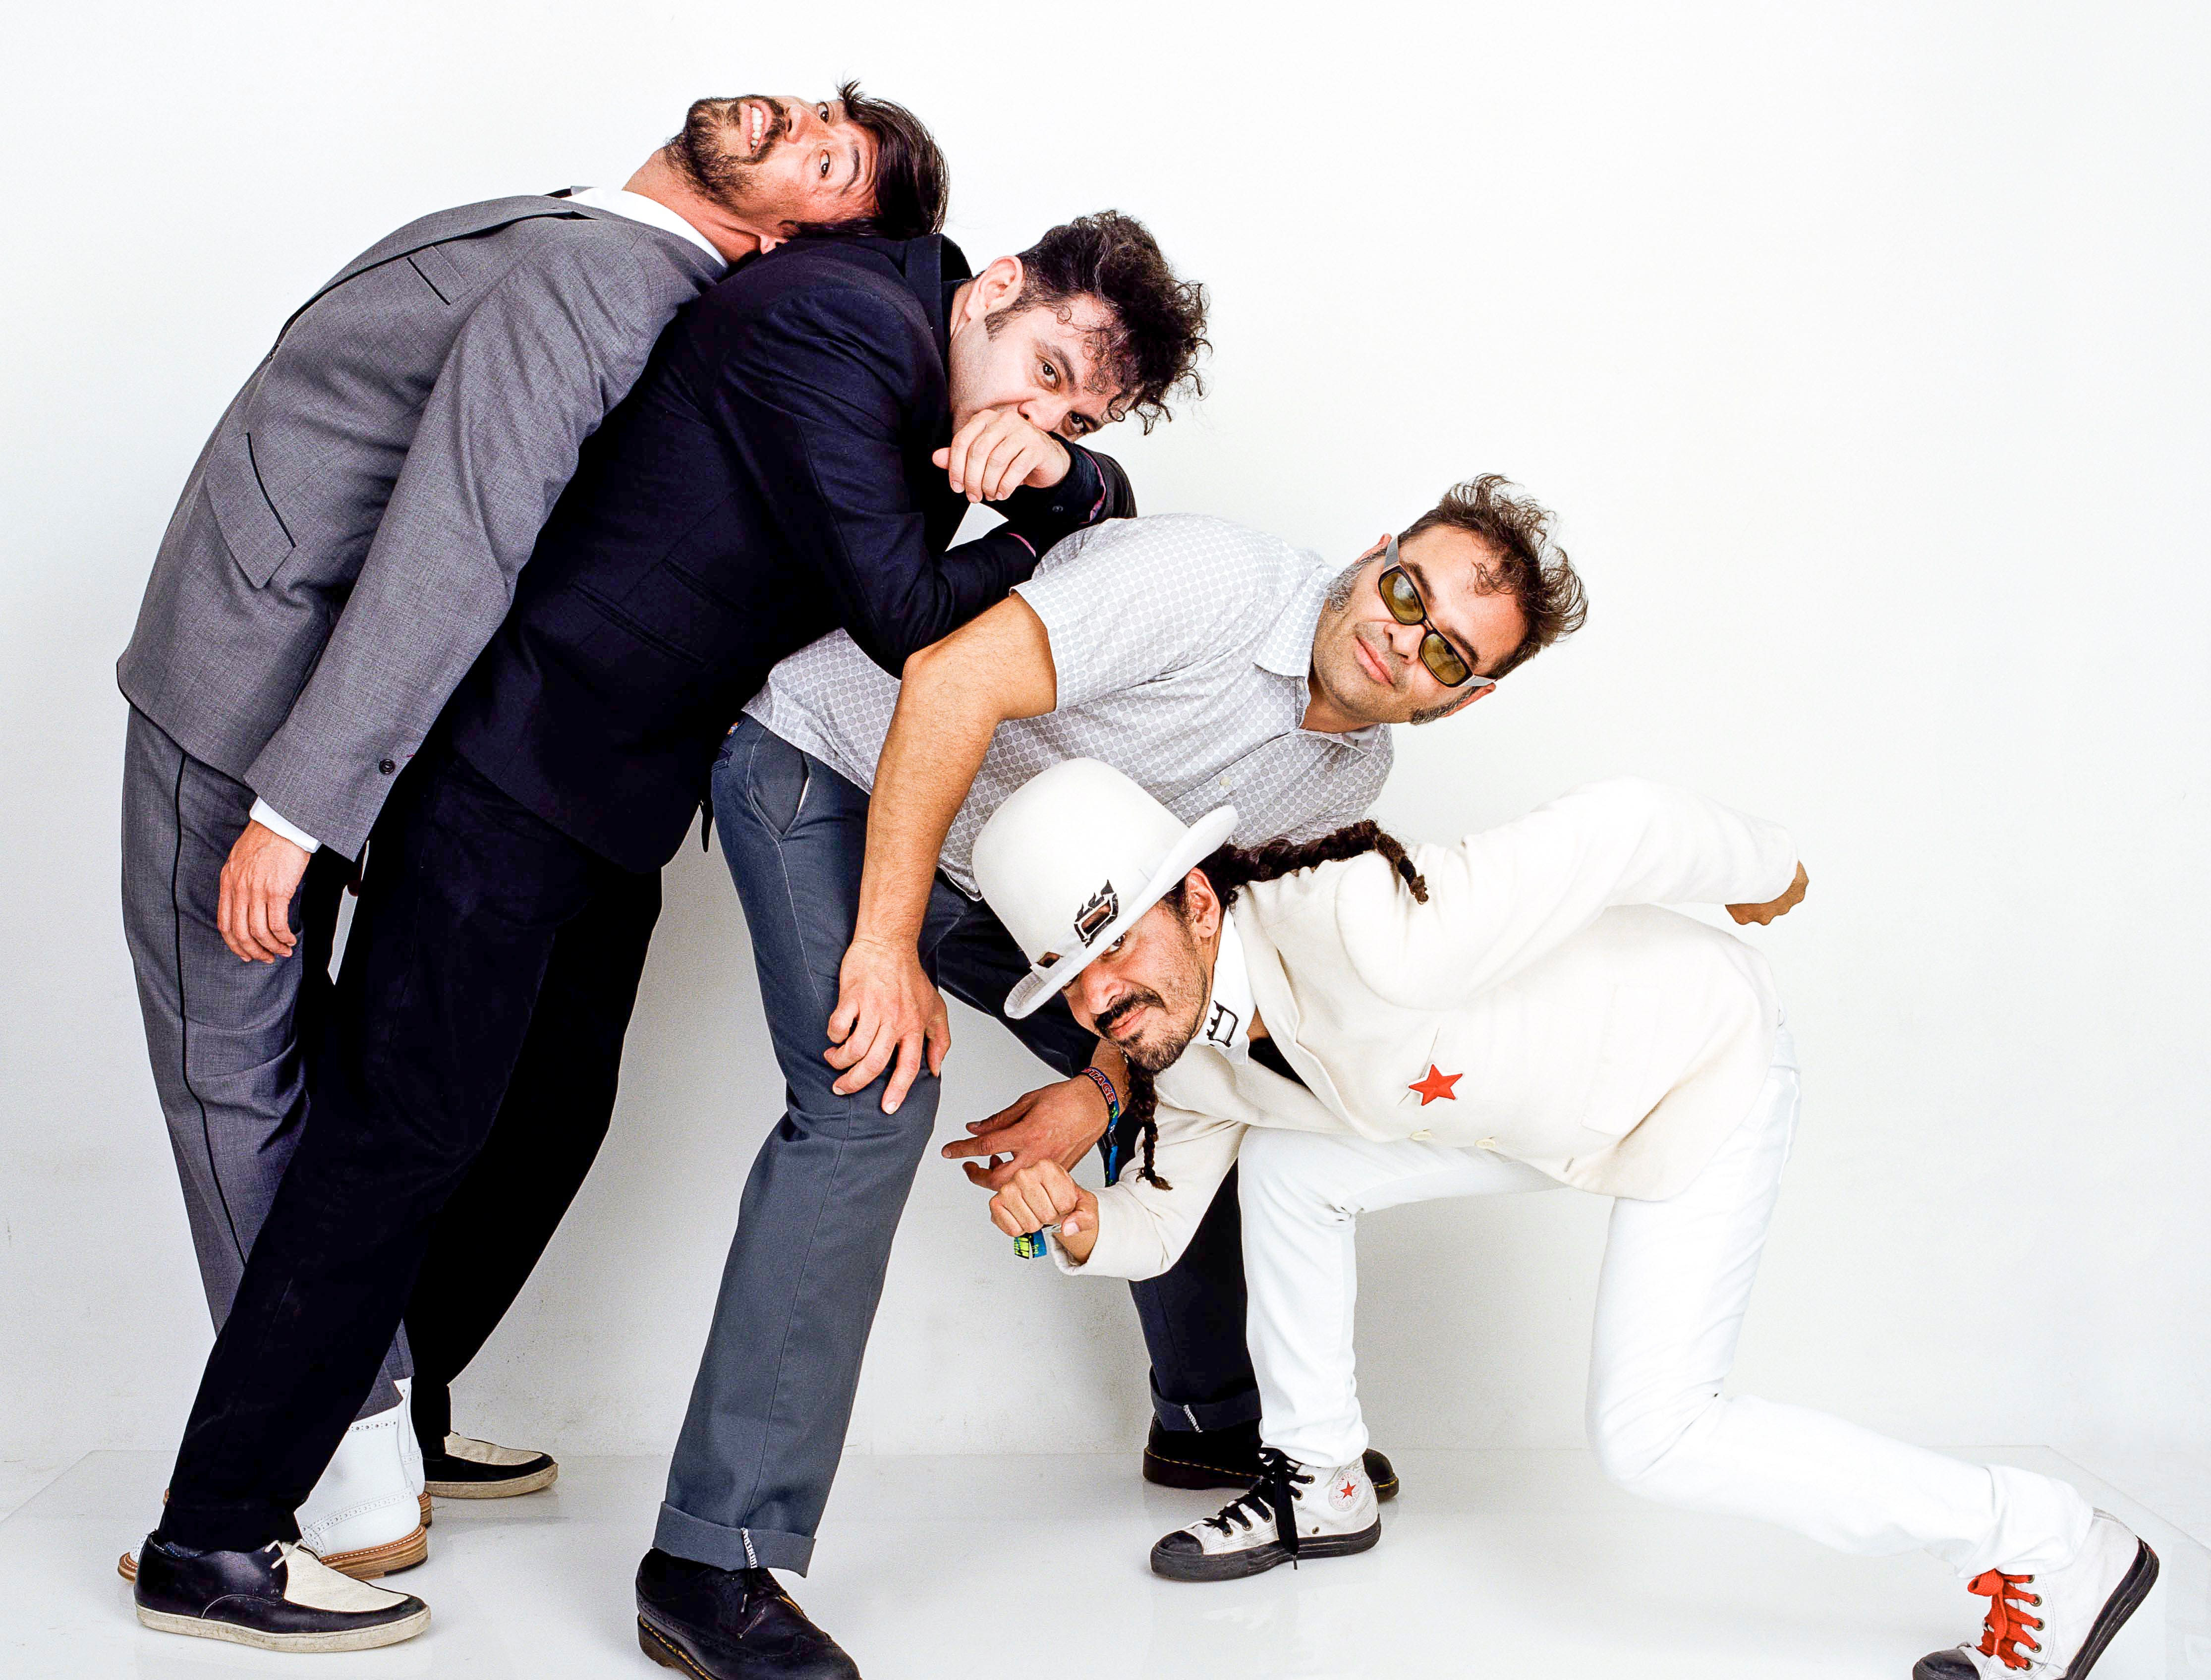 Cafe Tacvba, one of the first Mexican bands to play Coachella, have mad several visits to Andrew Haagen's photo tent.